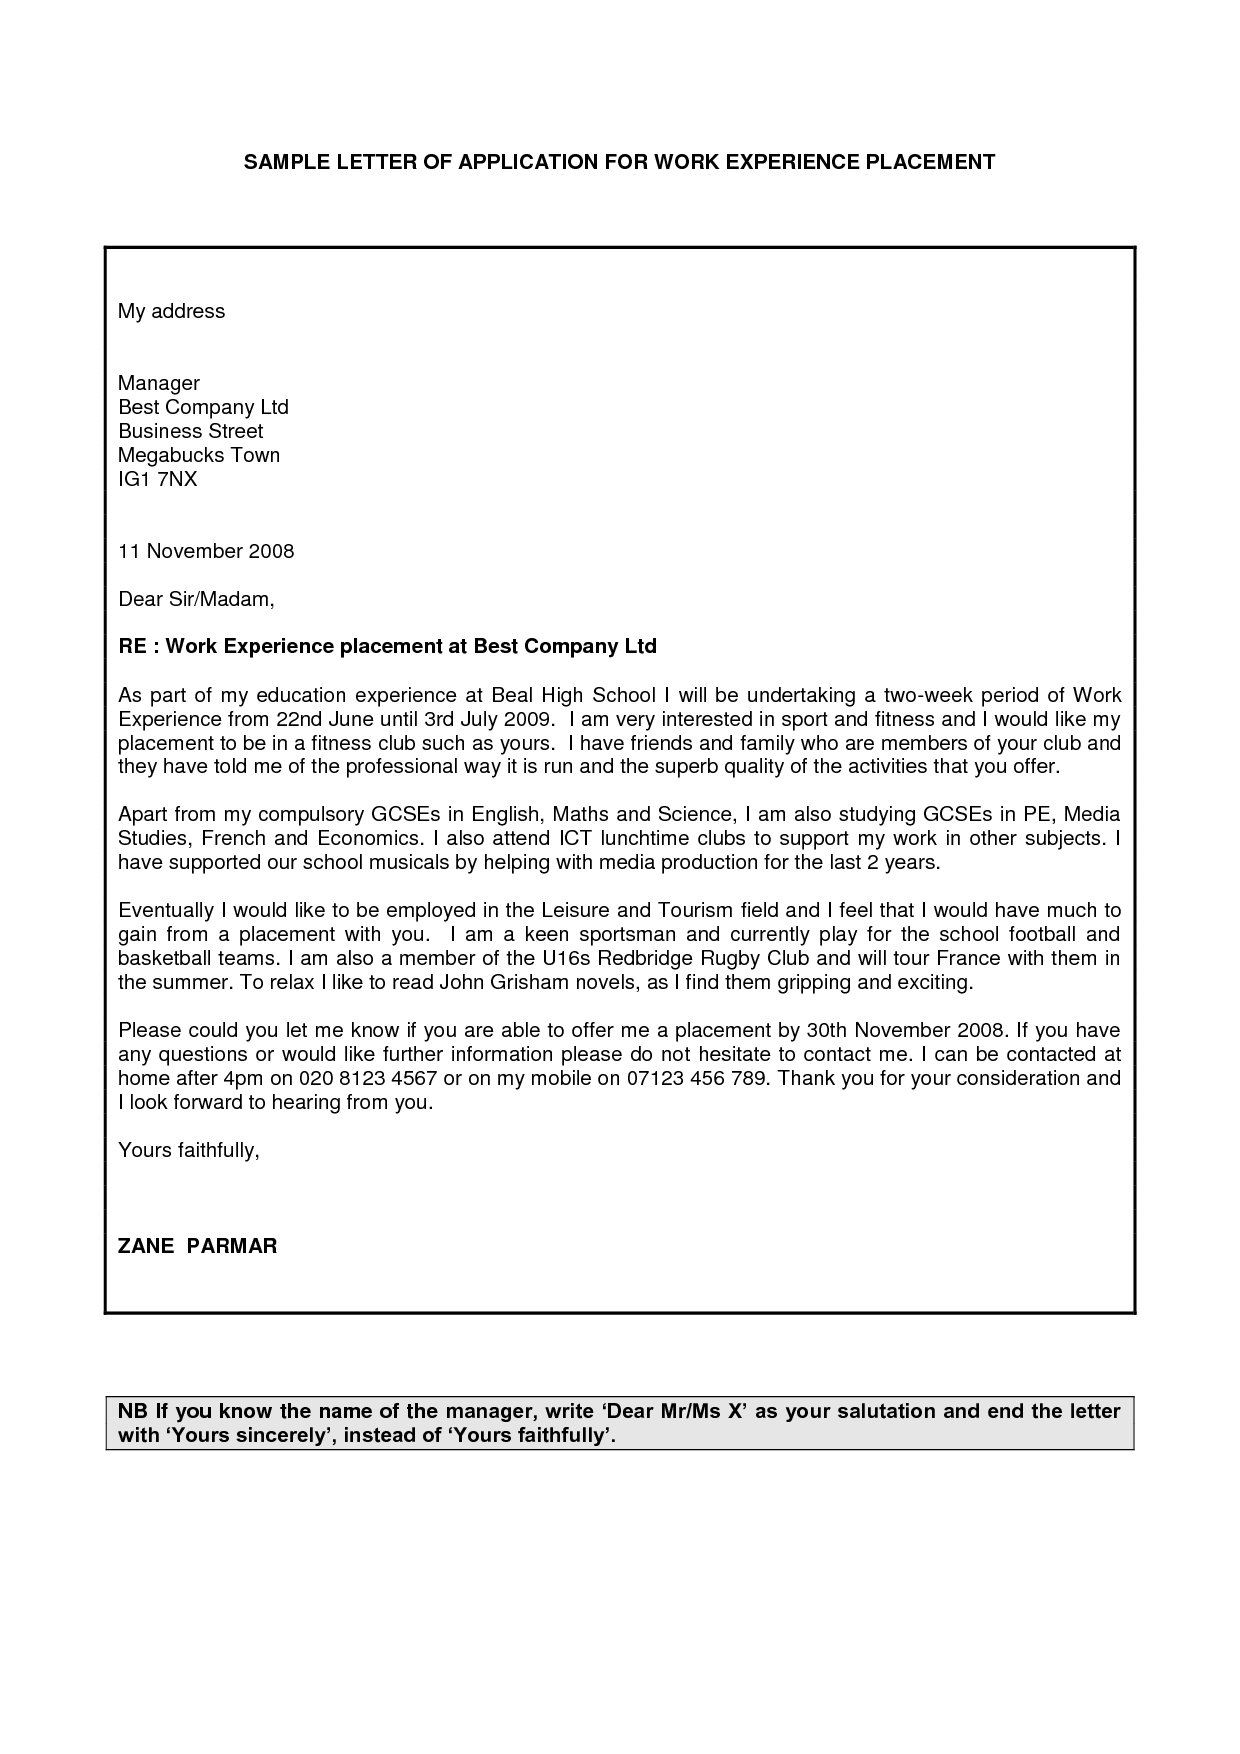 Field Placement Cover Letter Examples Of Cover Letters For Work Placements Docoments